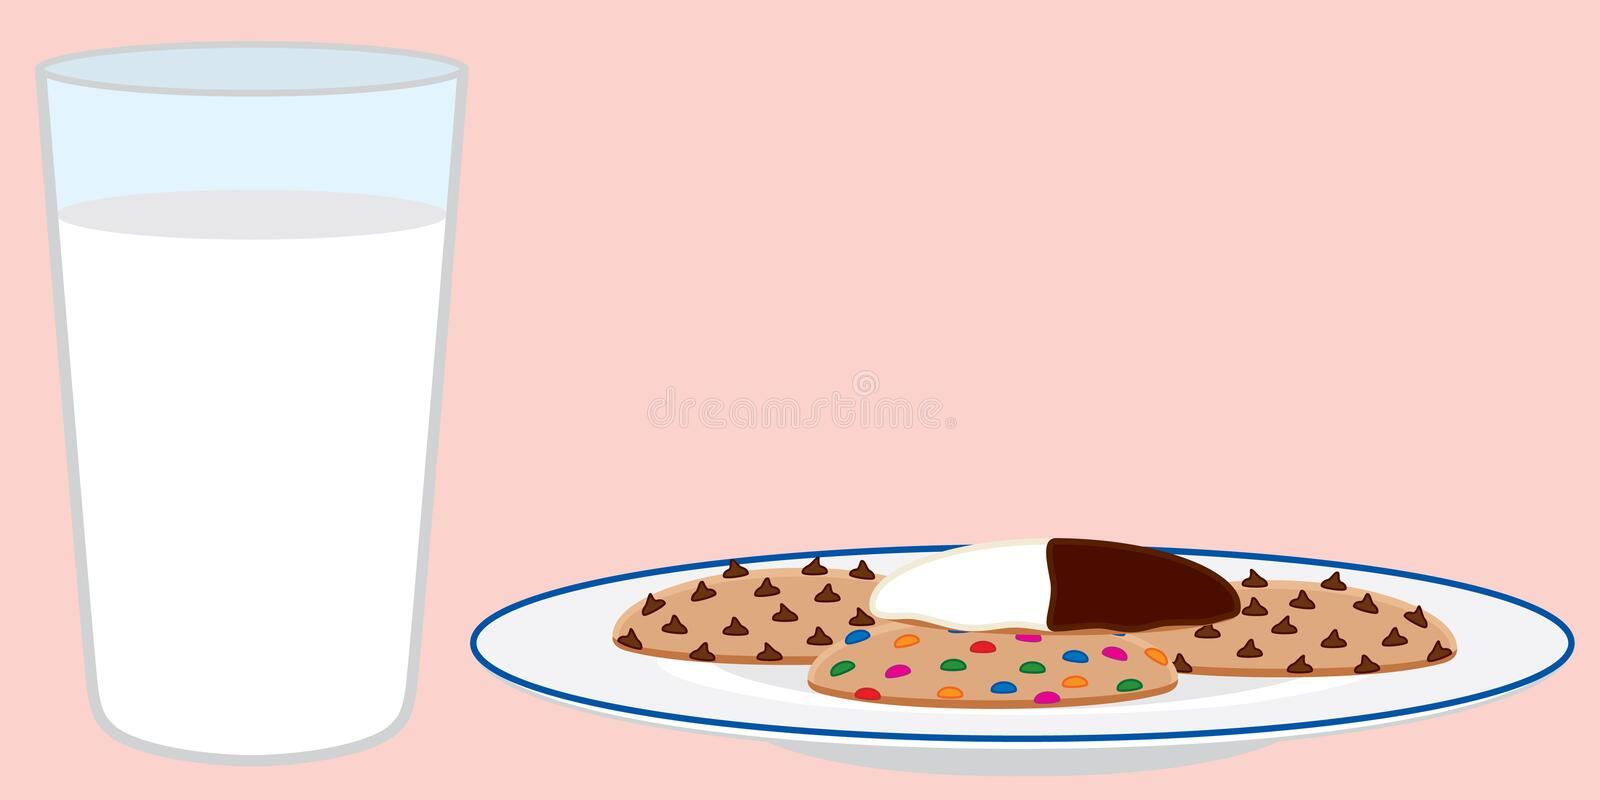 Cookies and Milk royalty free illustration